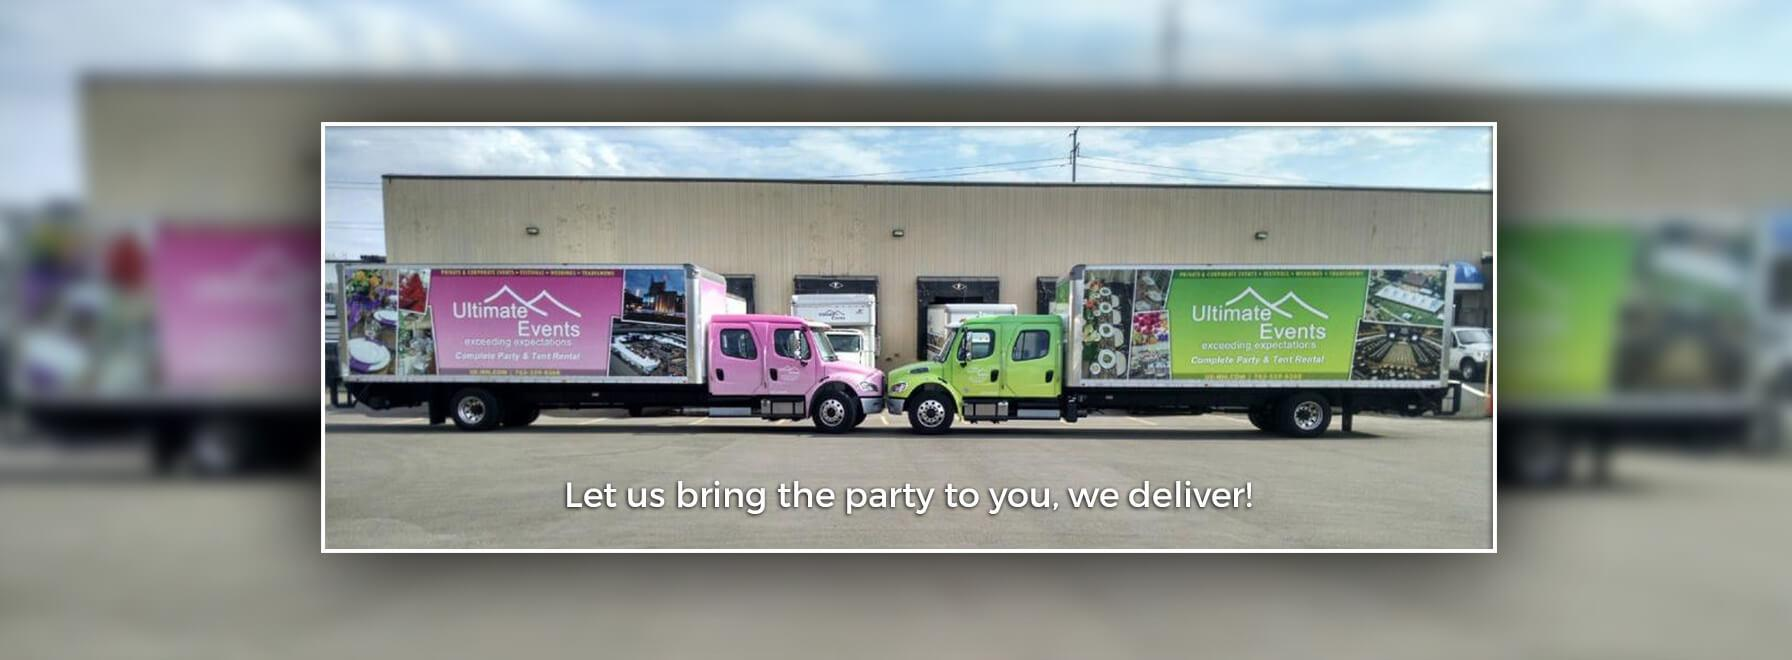 Let us bring the party to you, we deliver!